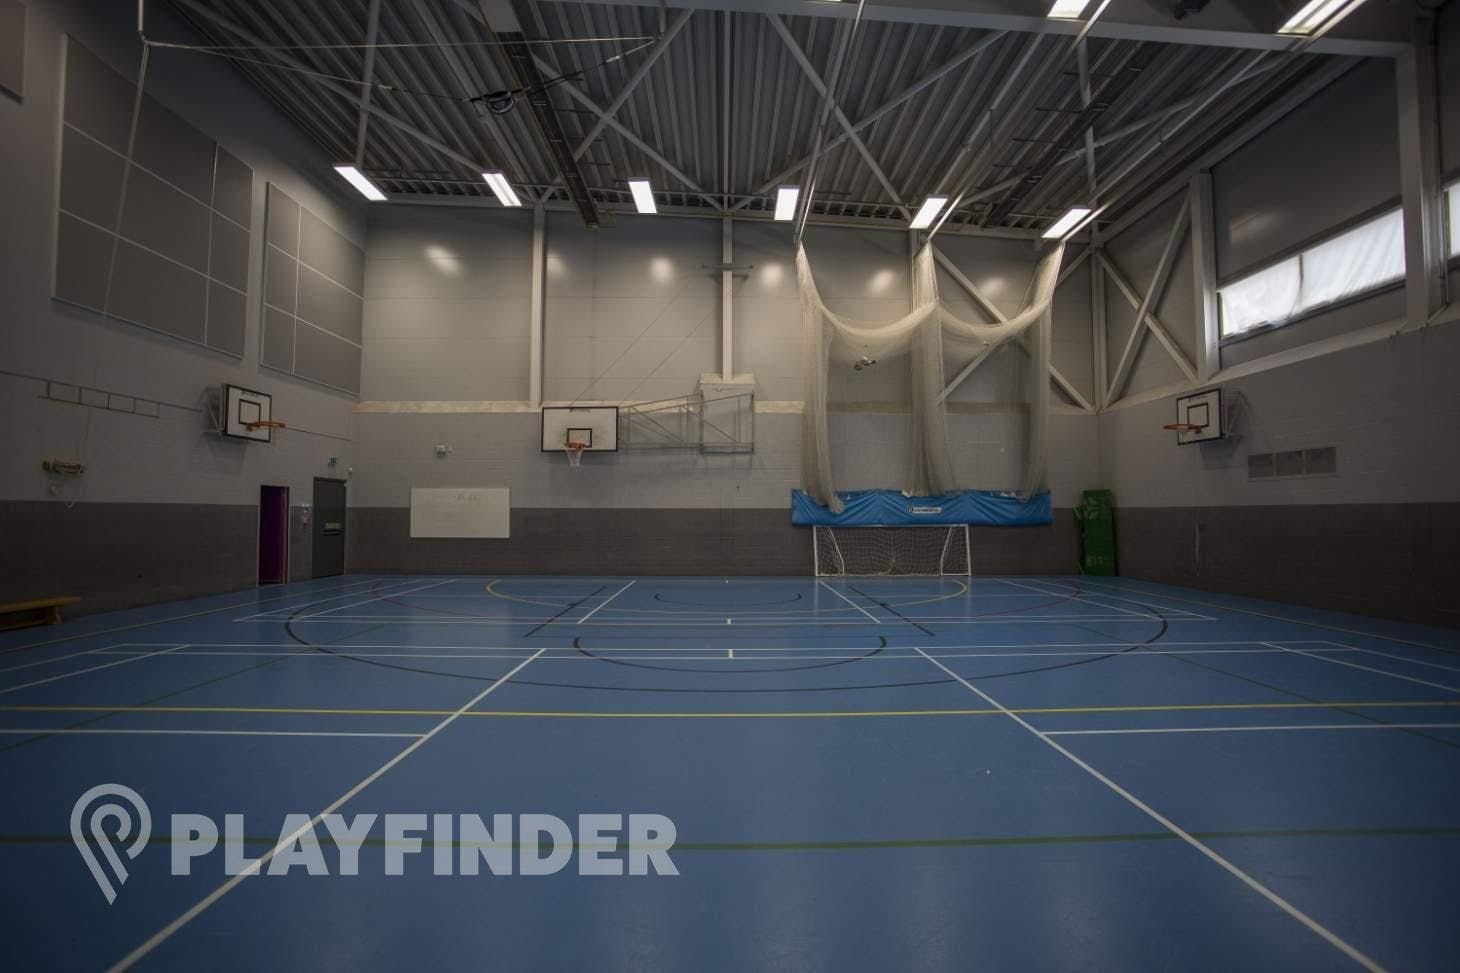 Ark Academy Wembley 5 a side | Indoor football pitch